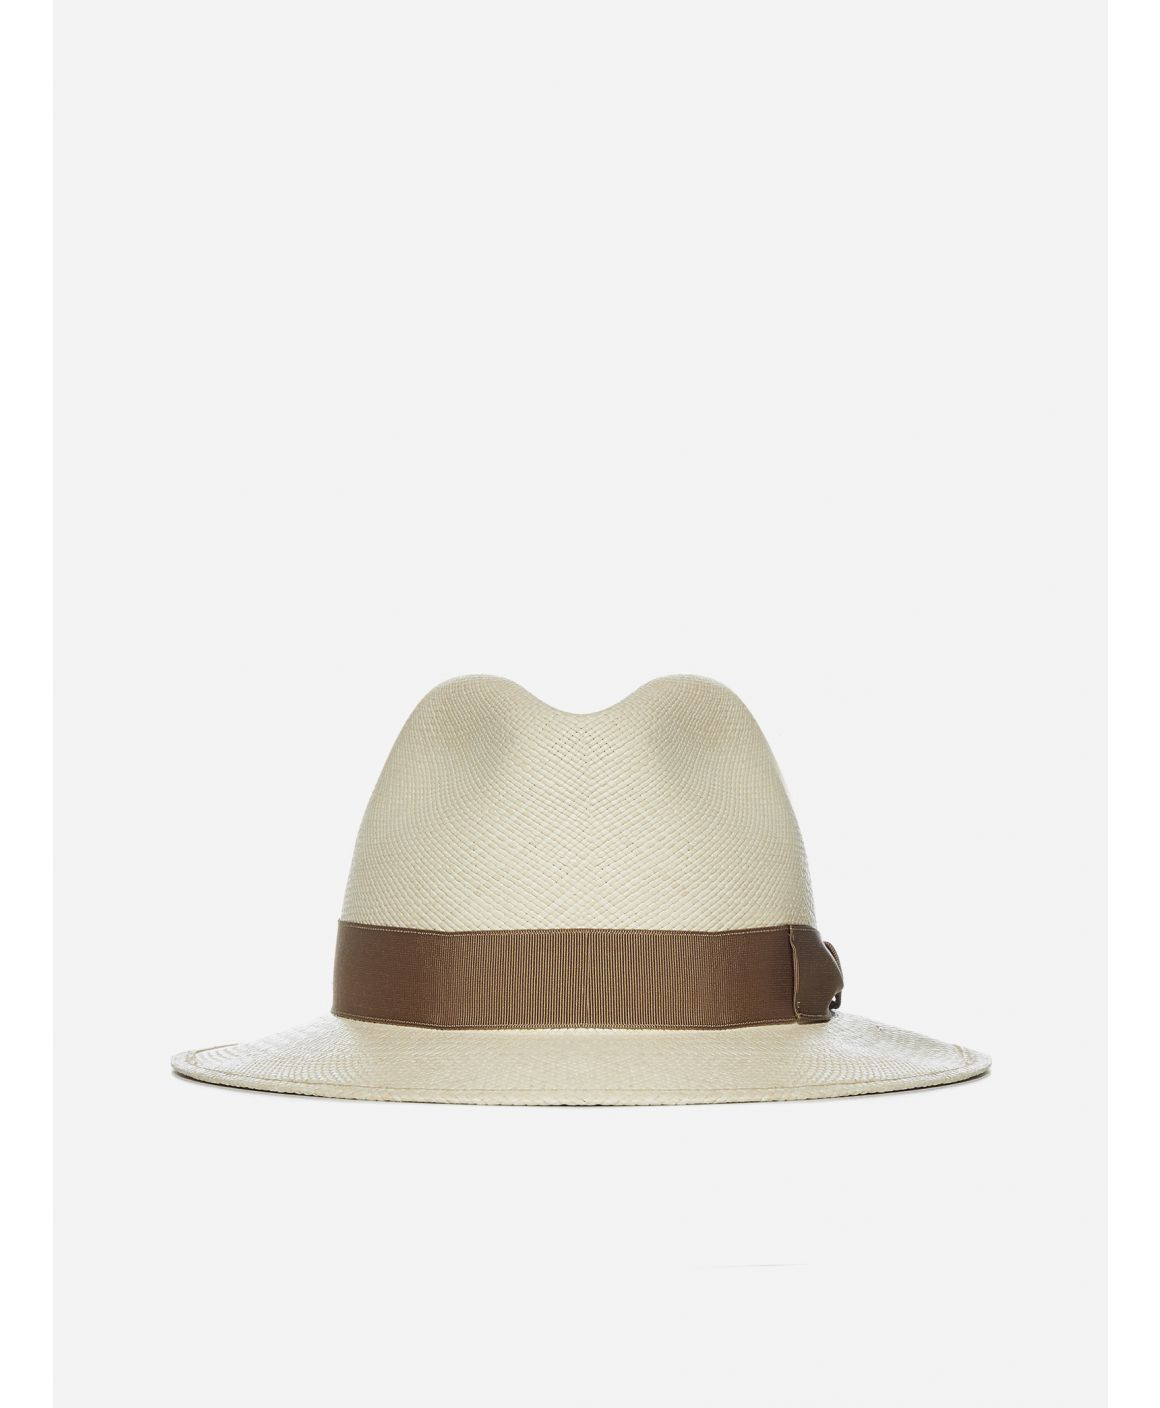 Quito medium brim Panama hat